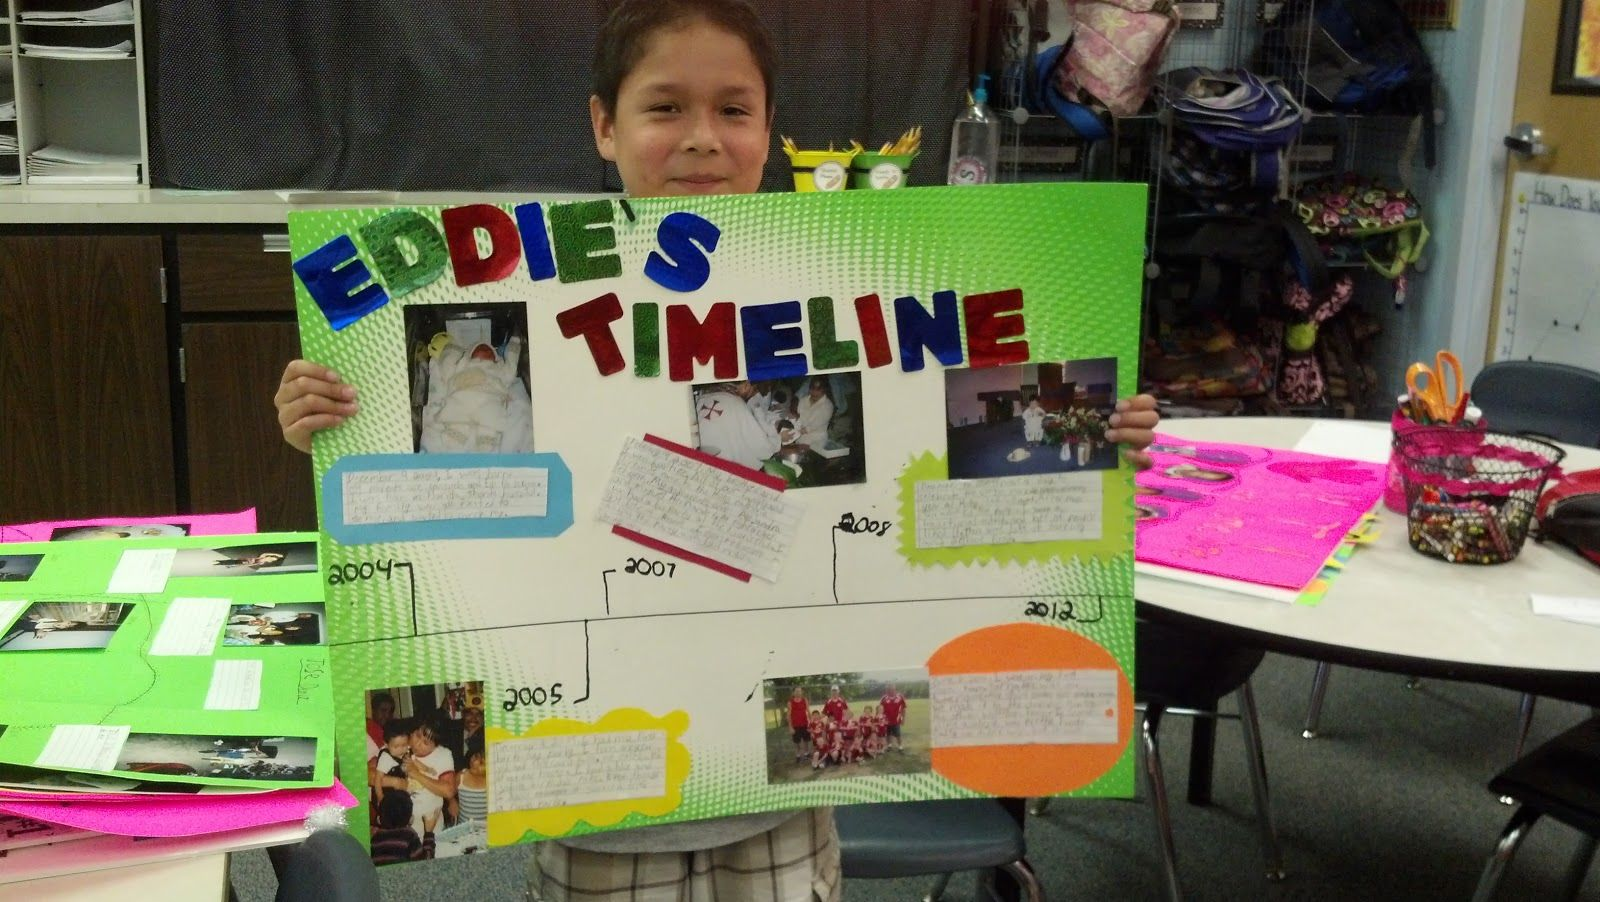 Second Grade Timeline Project Ideas | Kiddos | Pinterest